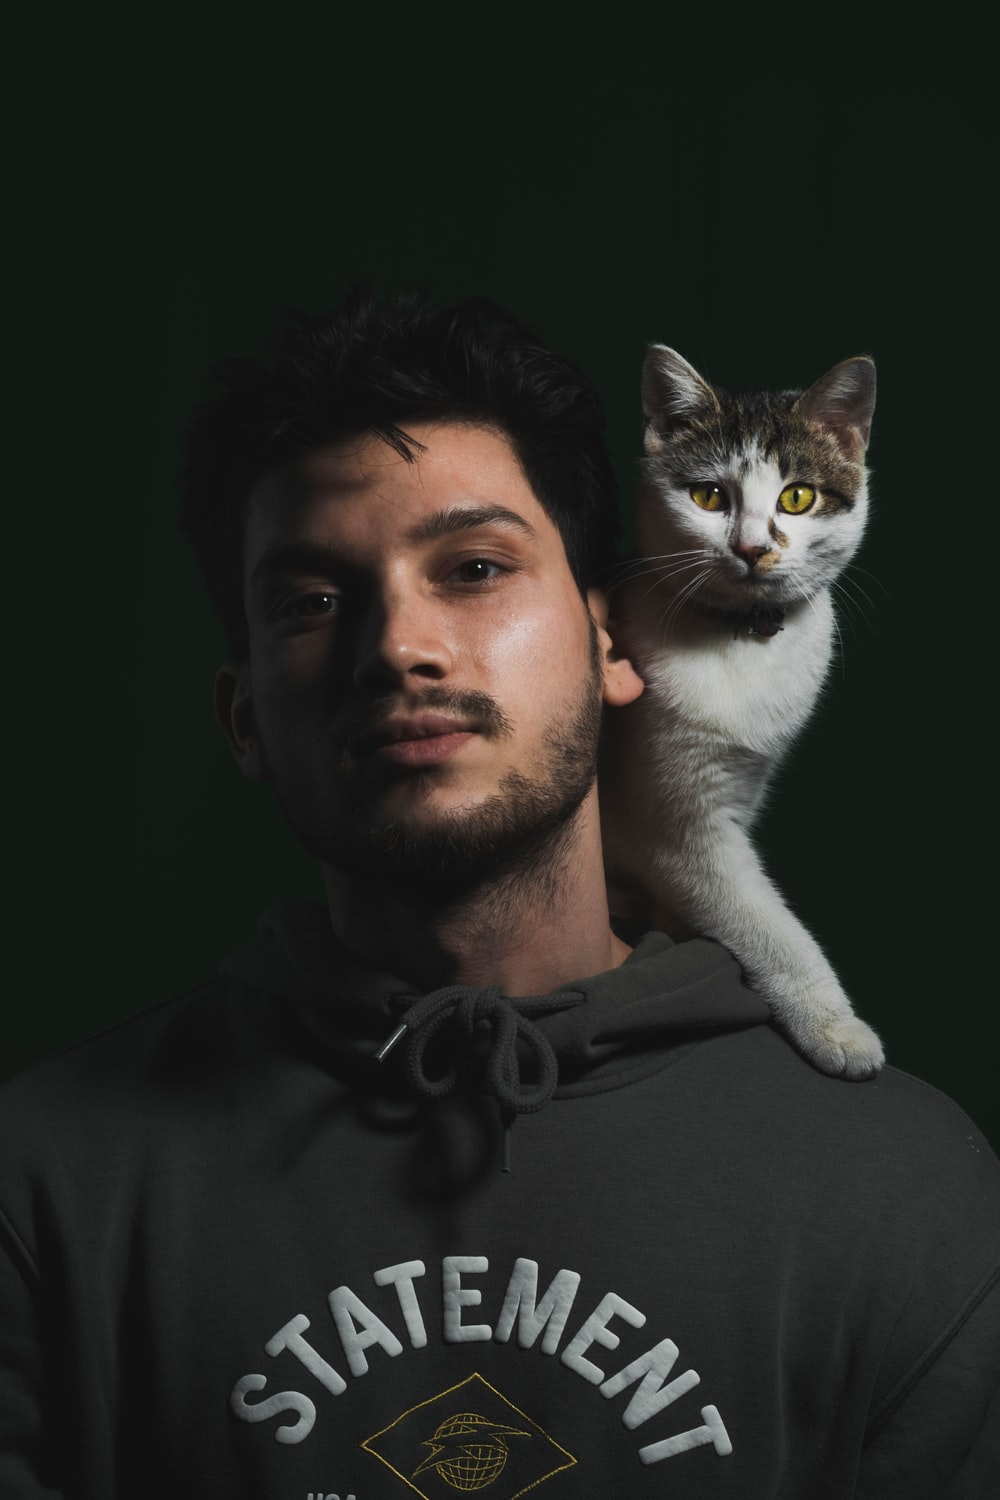 man in black crew neck shirt holding white and gray cat